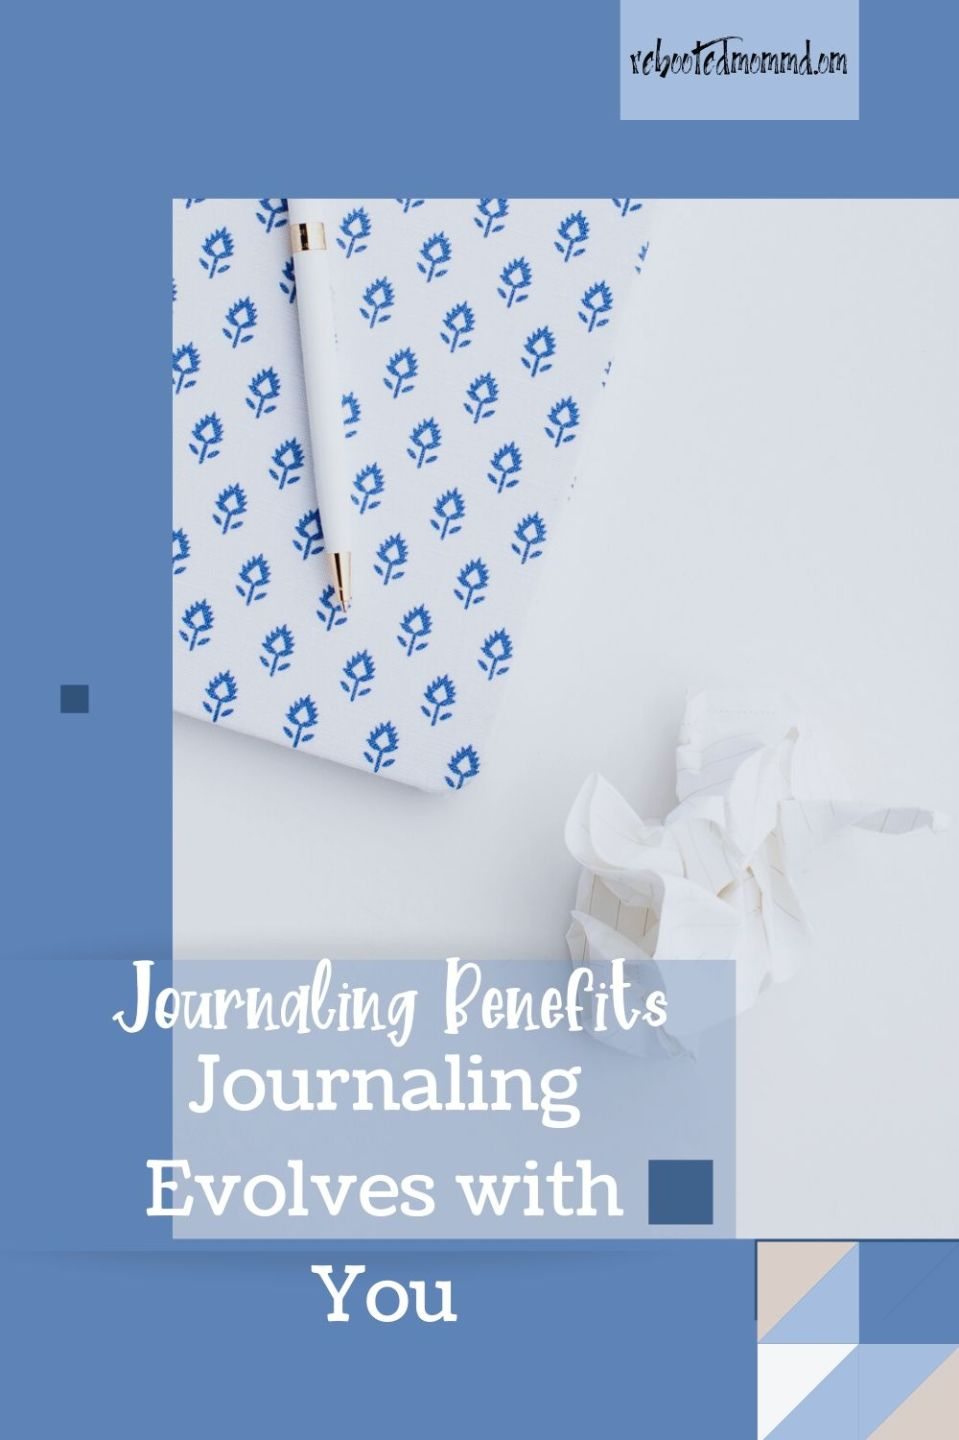 Journaling Evolves With You